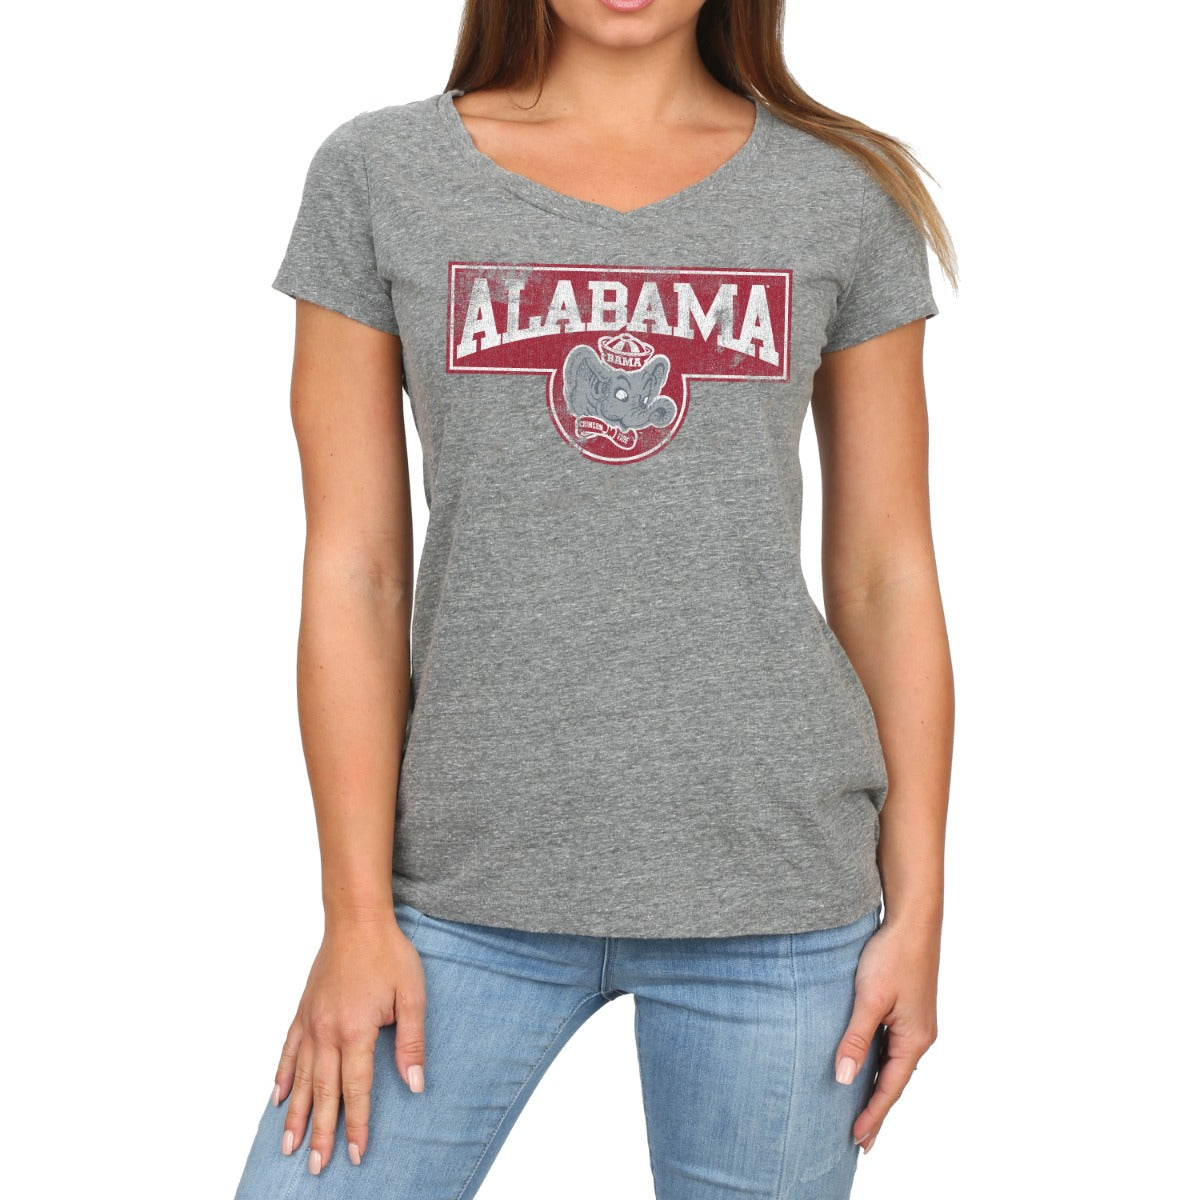 Alabama Women's Short Sleeve V-Neck Vintage Tee